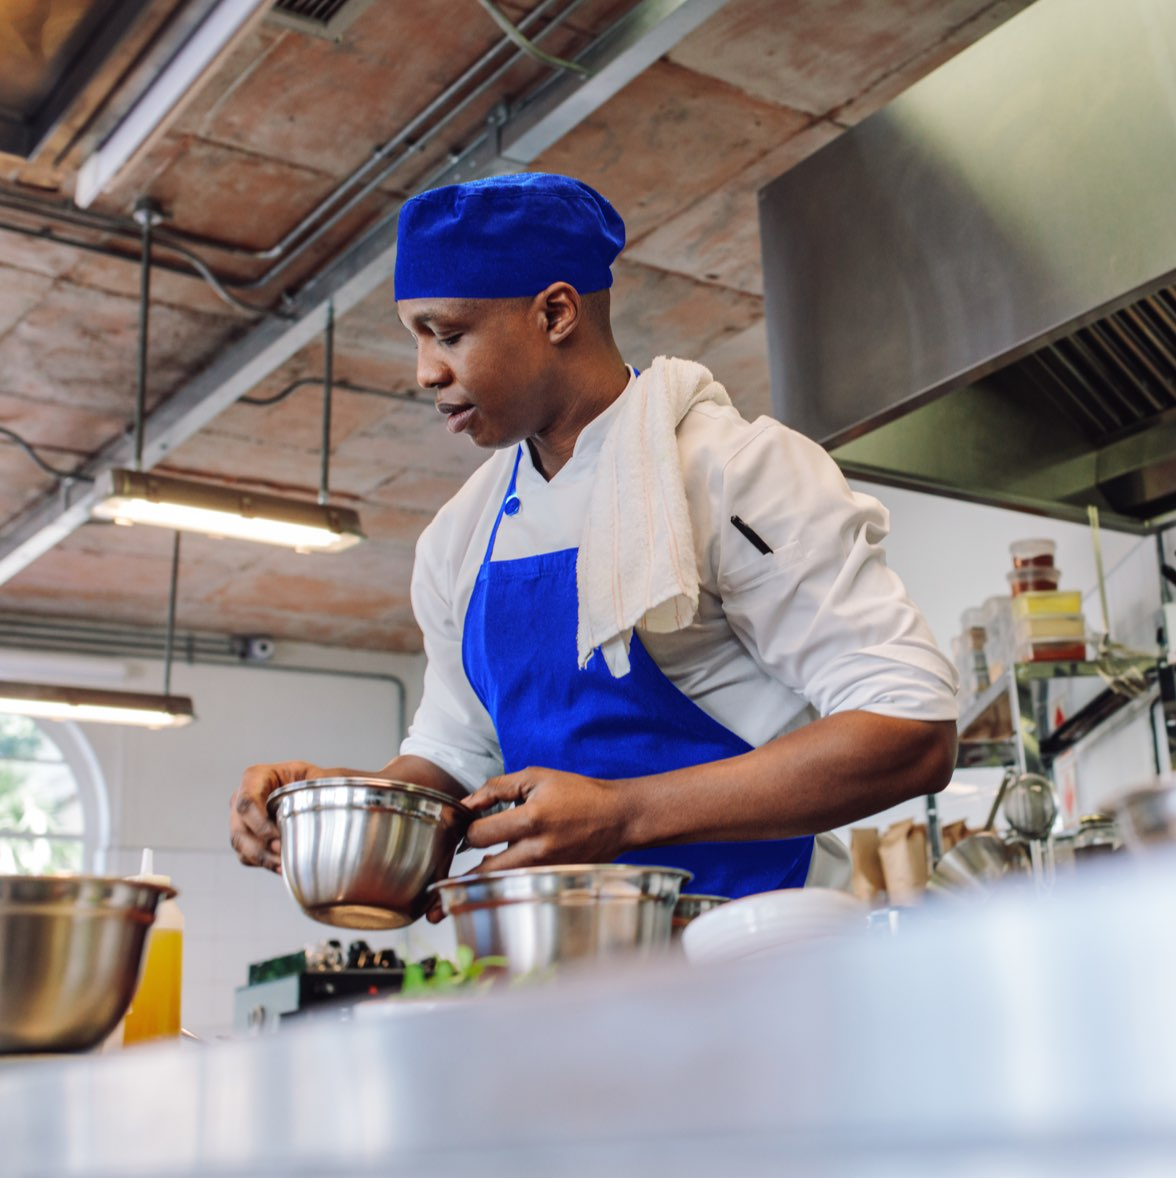 Find a great culinary job through Bluecrew as a temporary hospitality employee